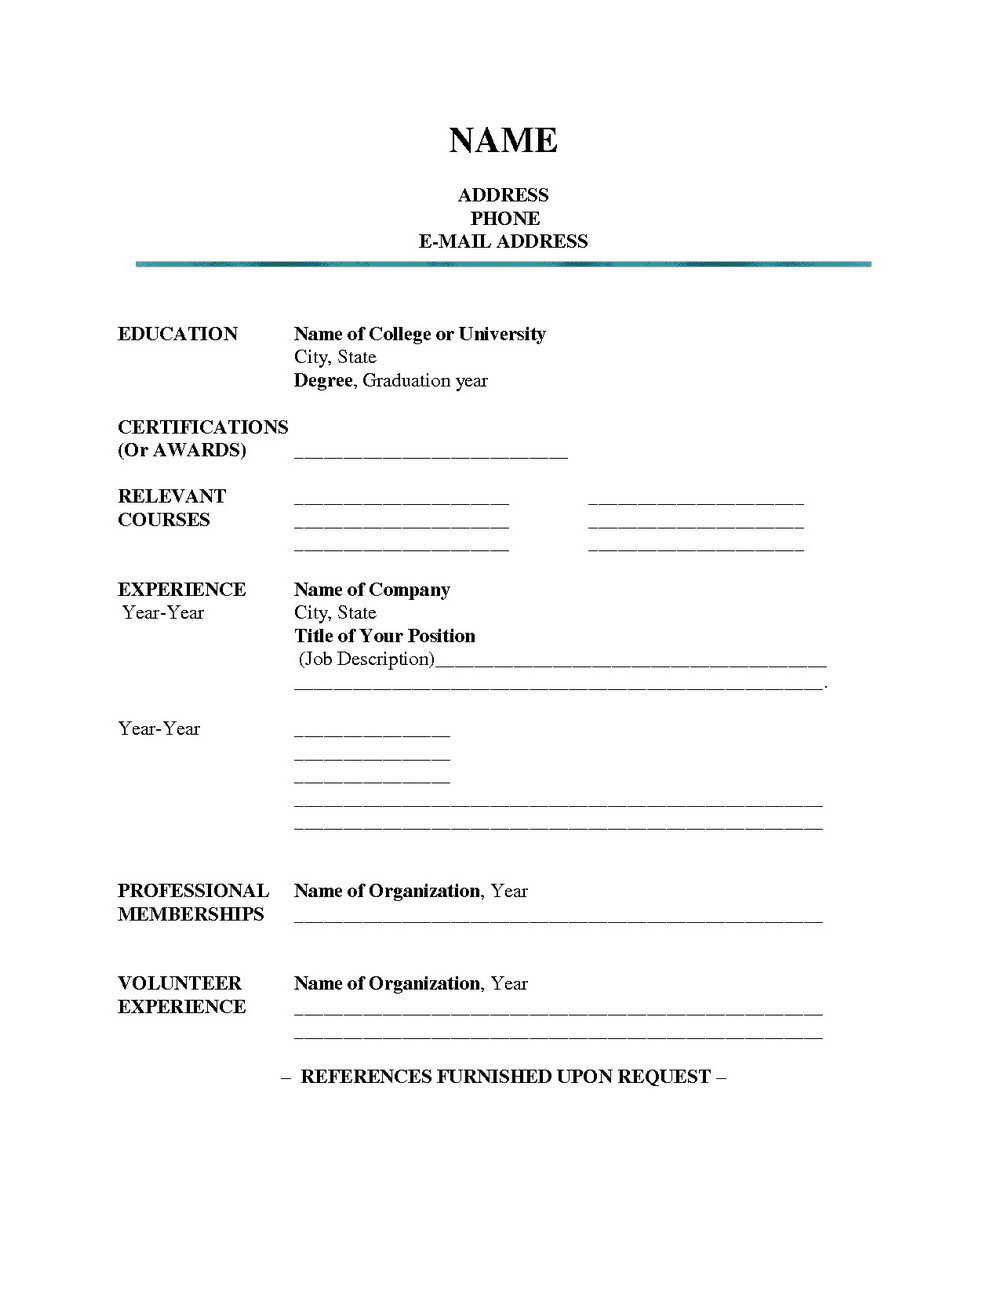 Blank Resume To Fill Out And Print